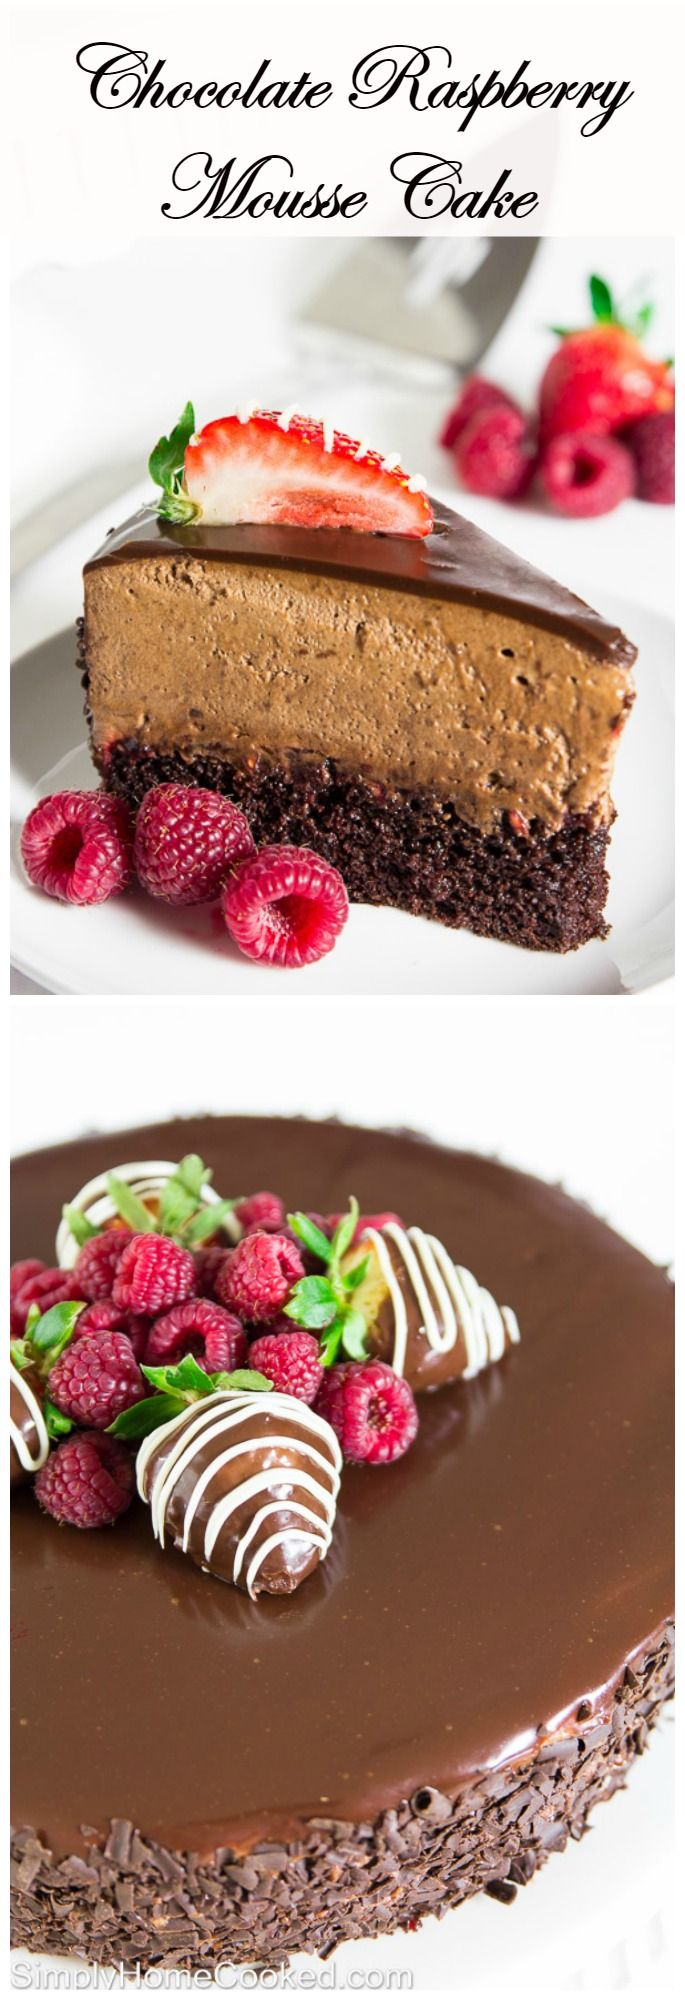 This chocolate raspberry mouse cake has it all. A moist chocolate cake base, rich and creamy mousse, and a little bit of tartness from the raspberry jam.